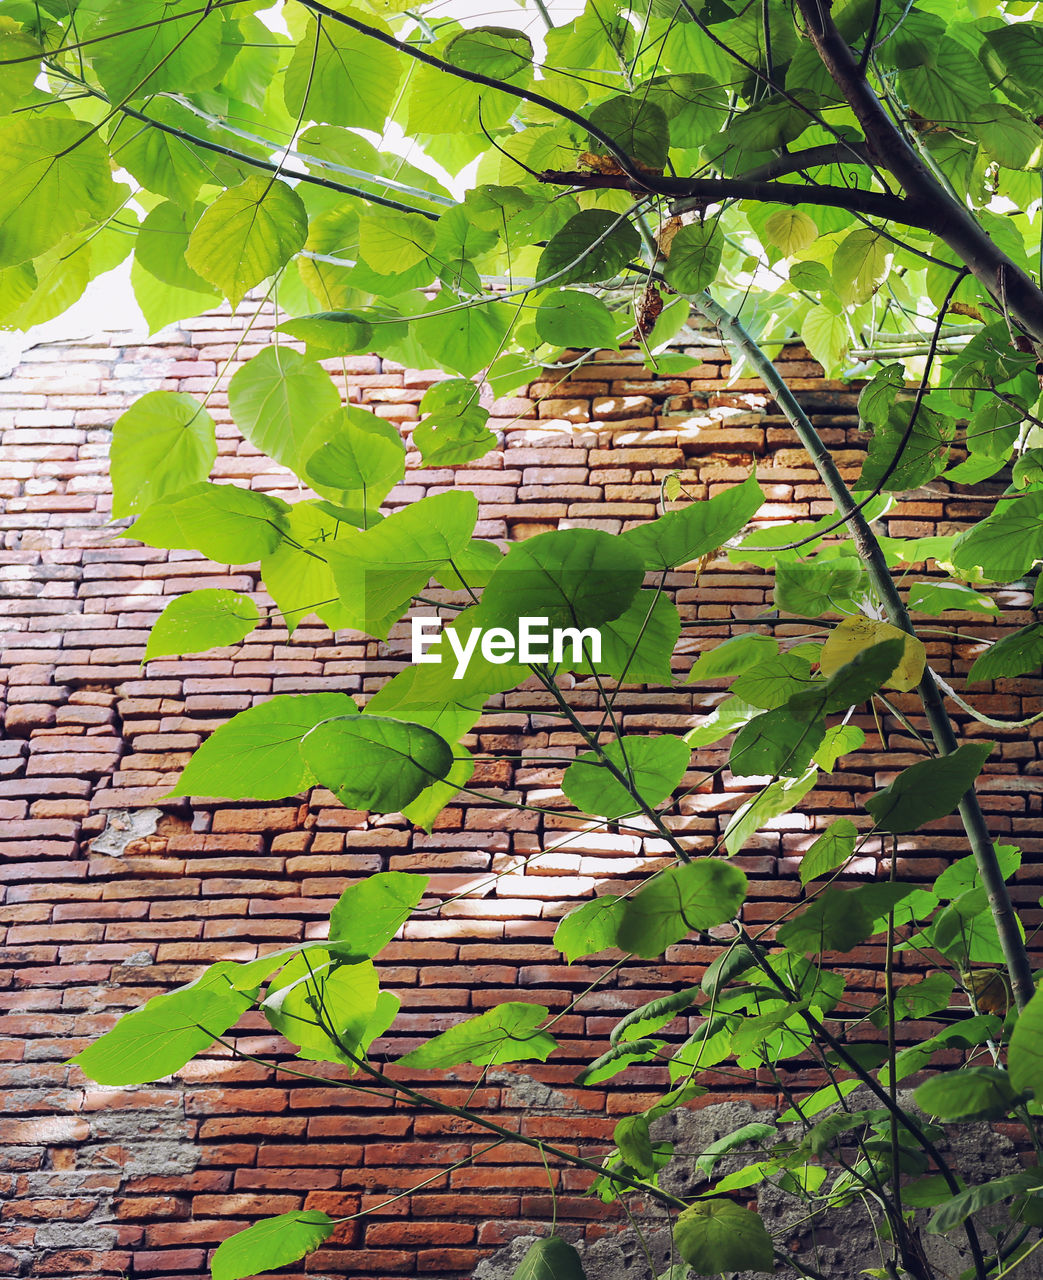 brick wall, leaf, growth, green color, plant, day, no people, outdoors, built structure, ivy, tree, architecture, nature, building exterior, branch, close-up